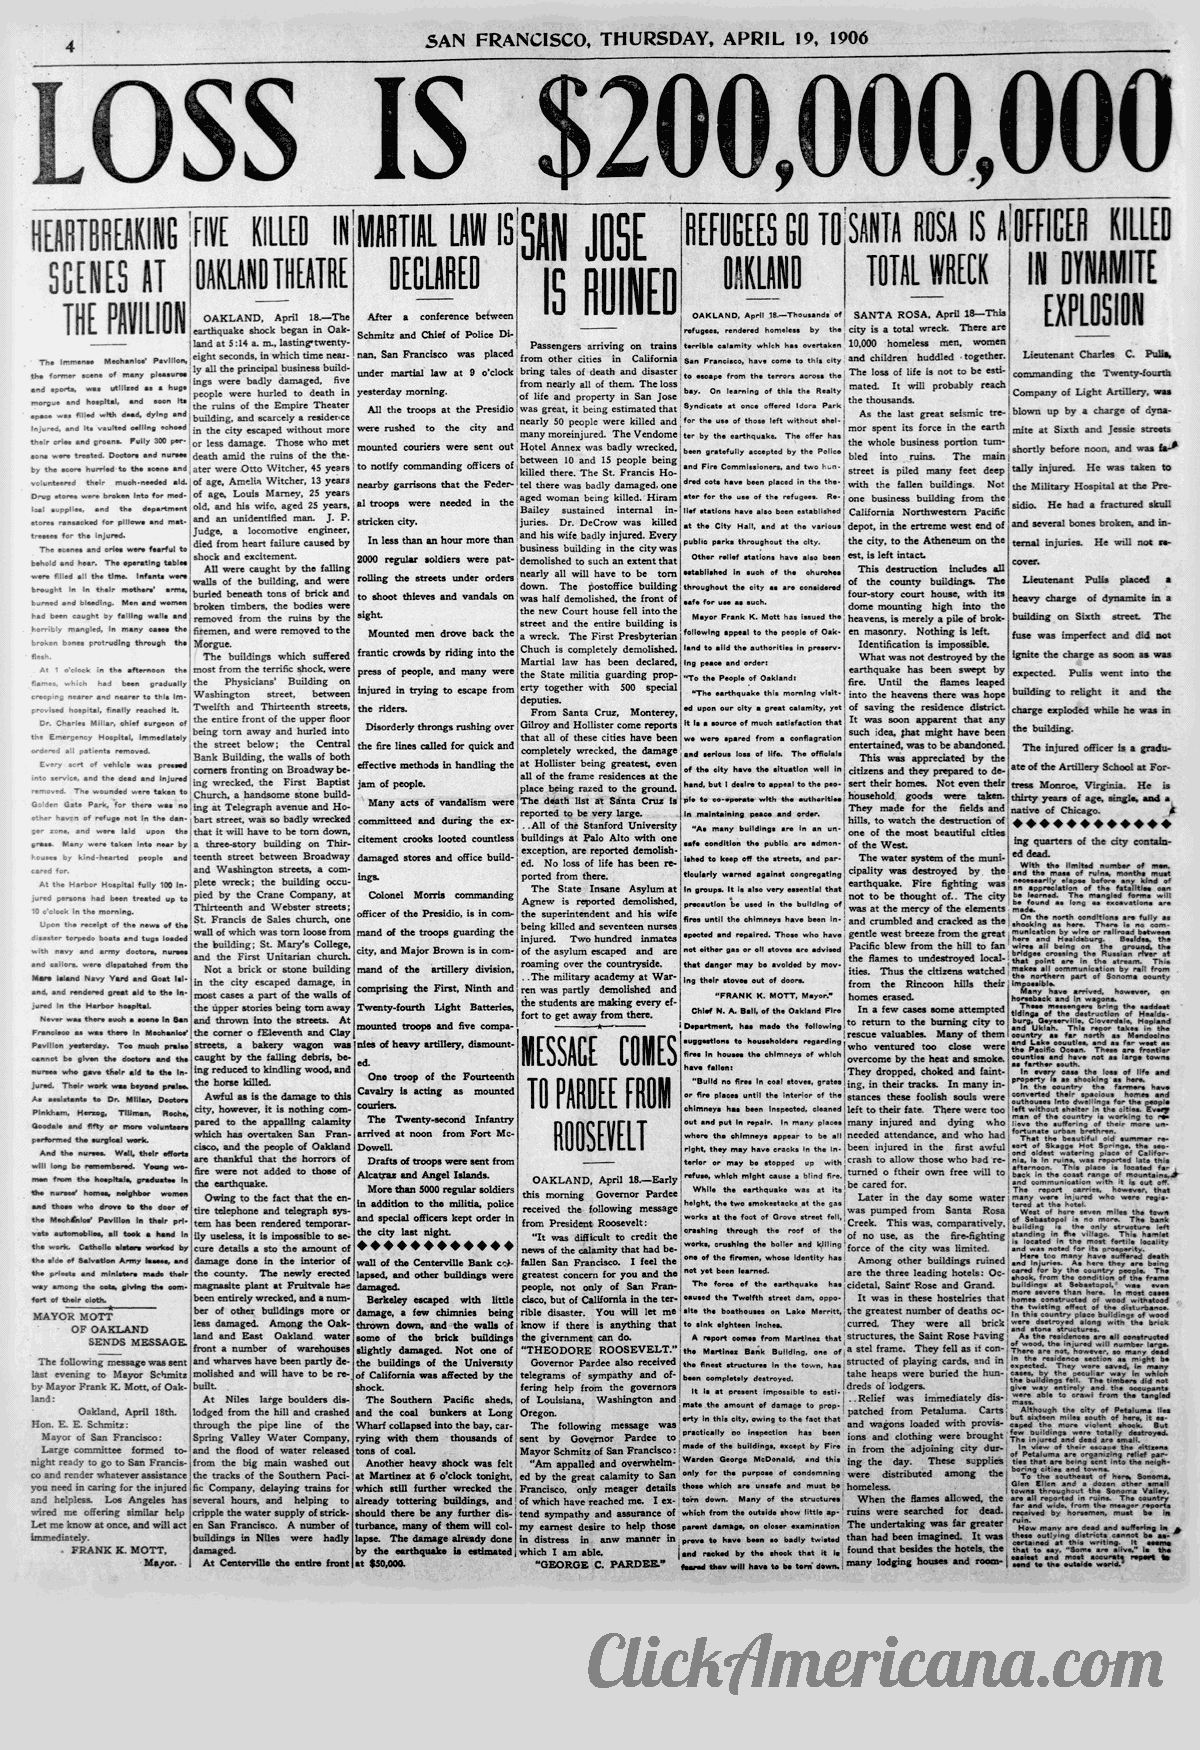 First chaotic news reports from the devastating 1906 San Francisco earthquake and fire (4)